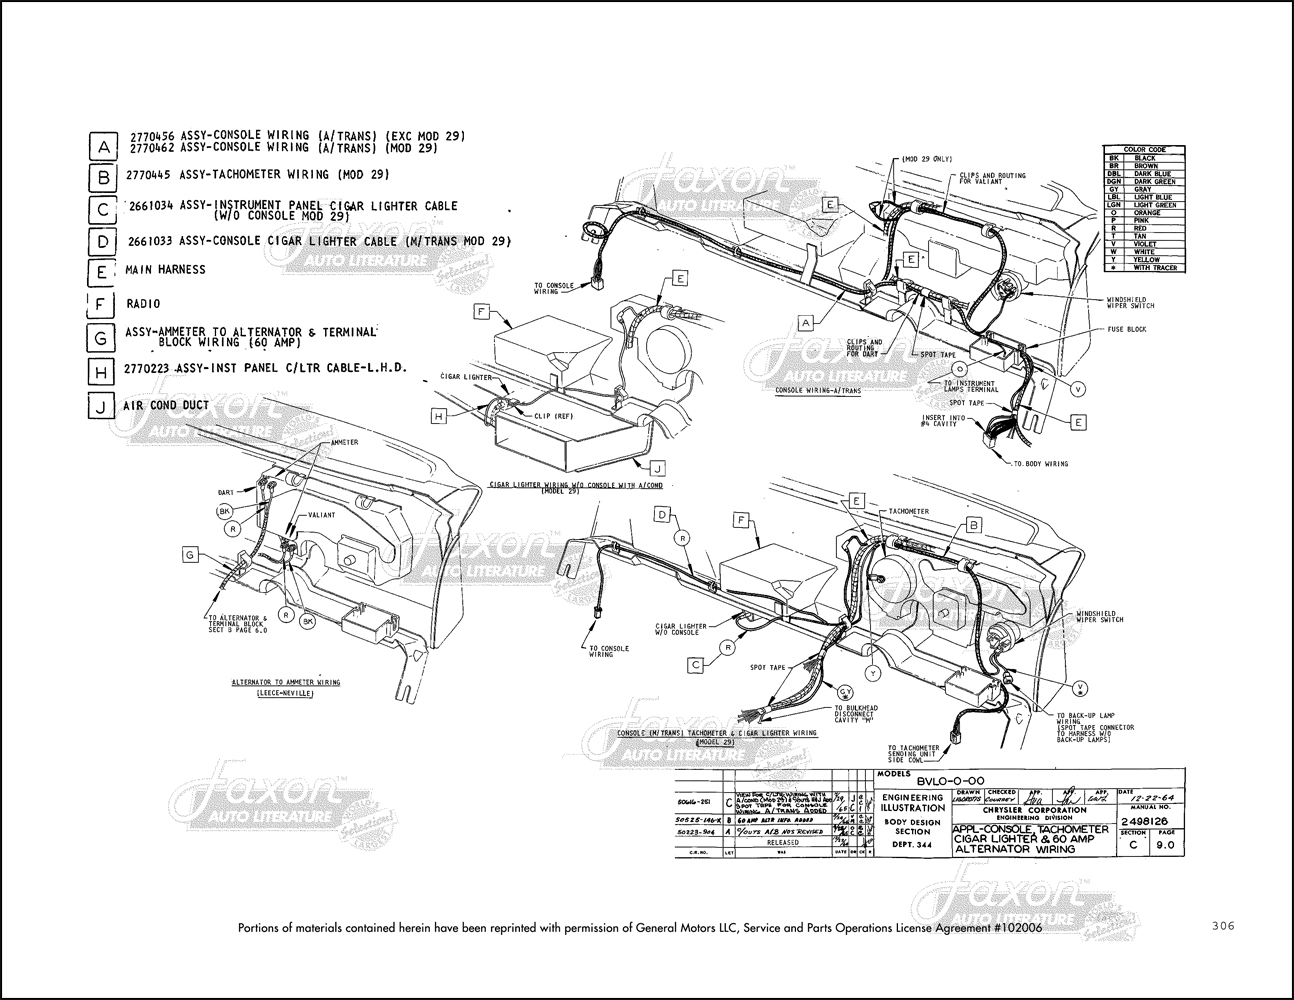 1966 Barracuda, Valiant and Dart Electrical and Body Assembly Manual ReprintFaxon Auto Literature